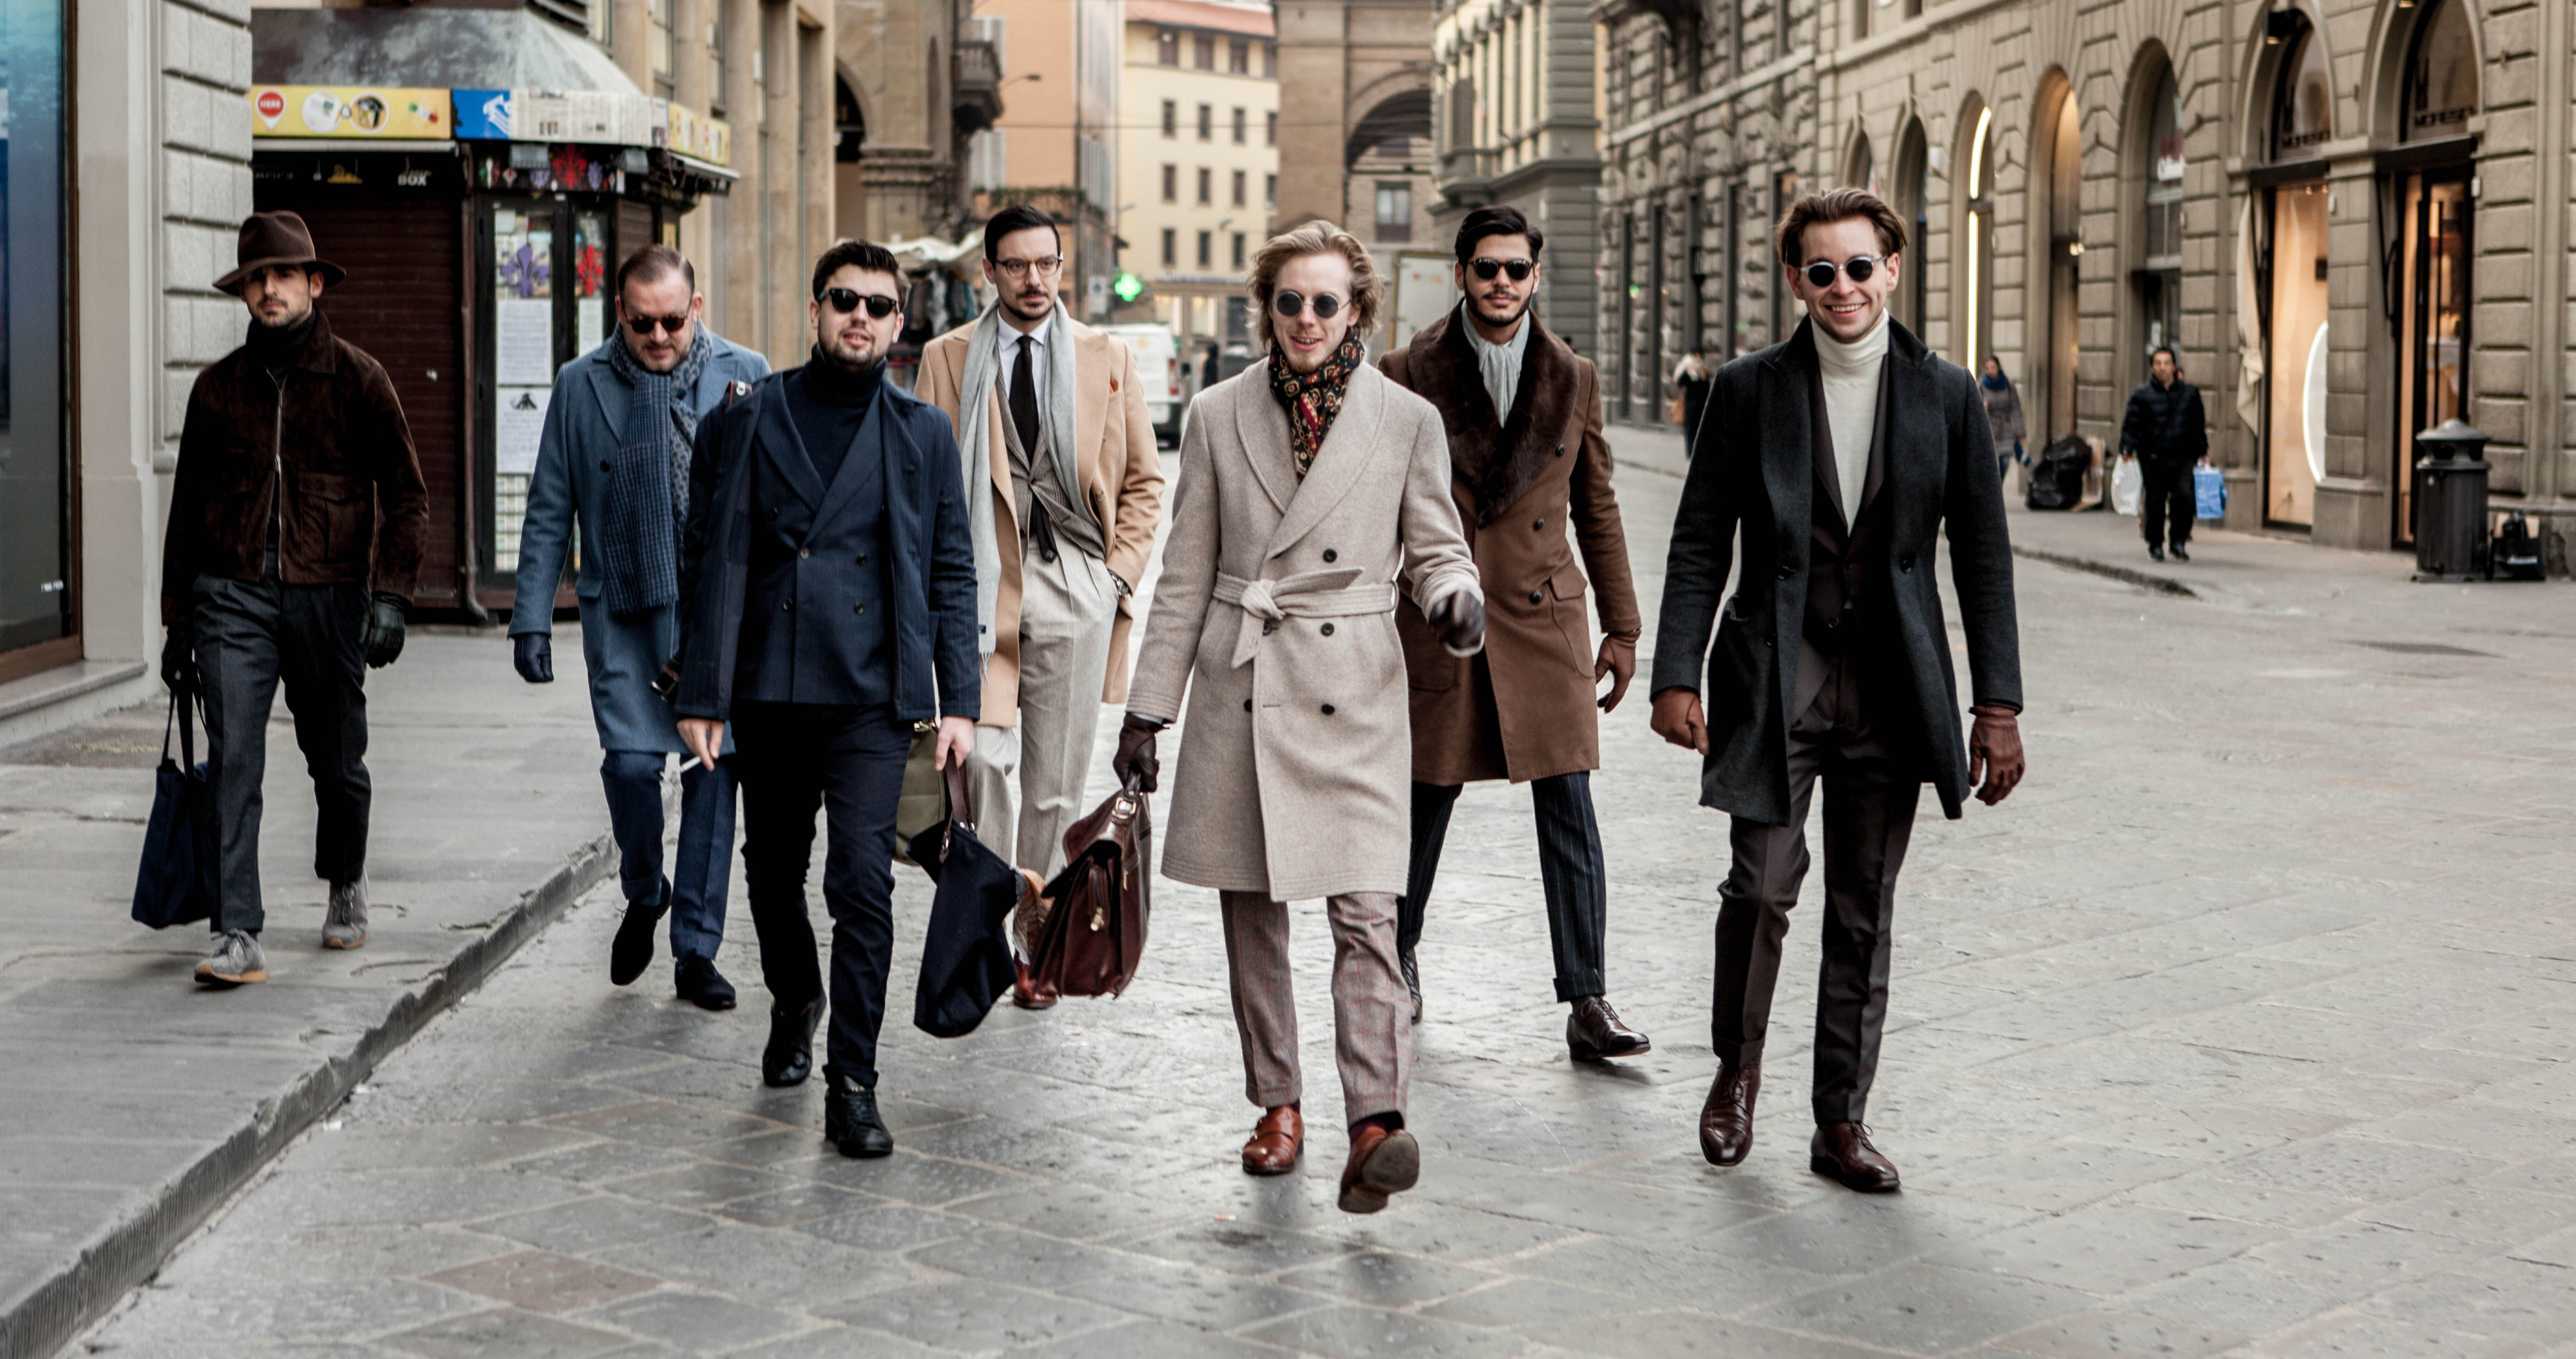 Lookbook: Pitti Uomo 91